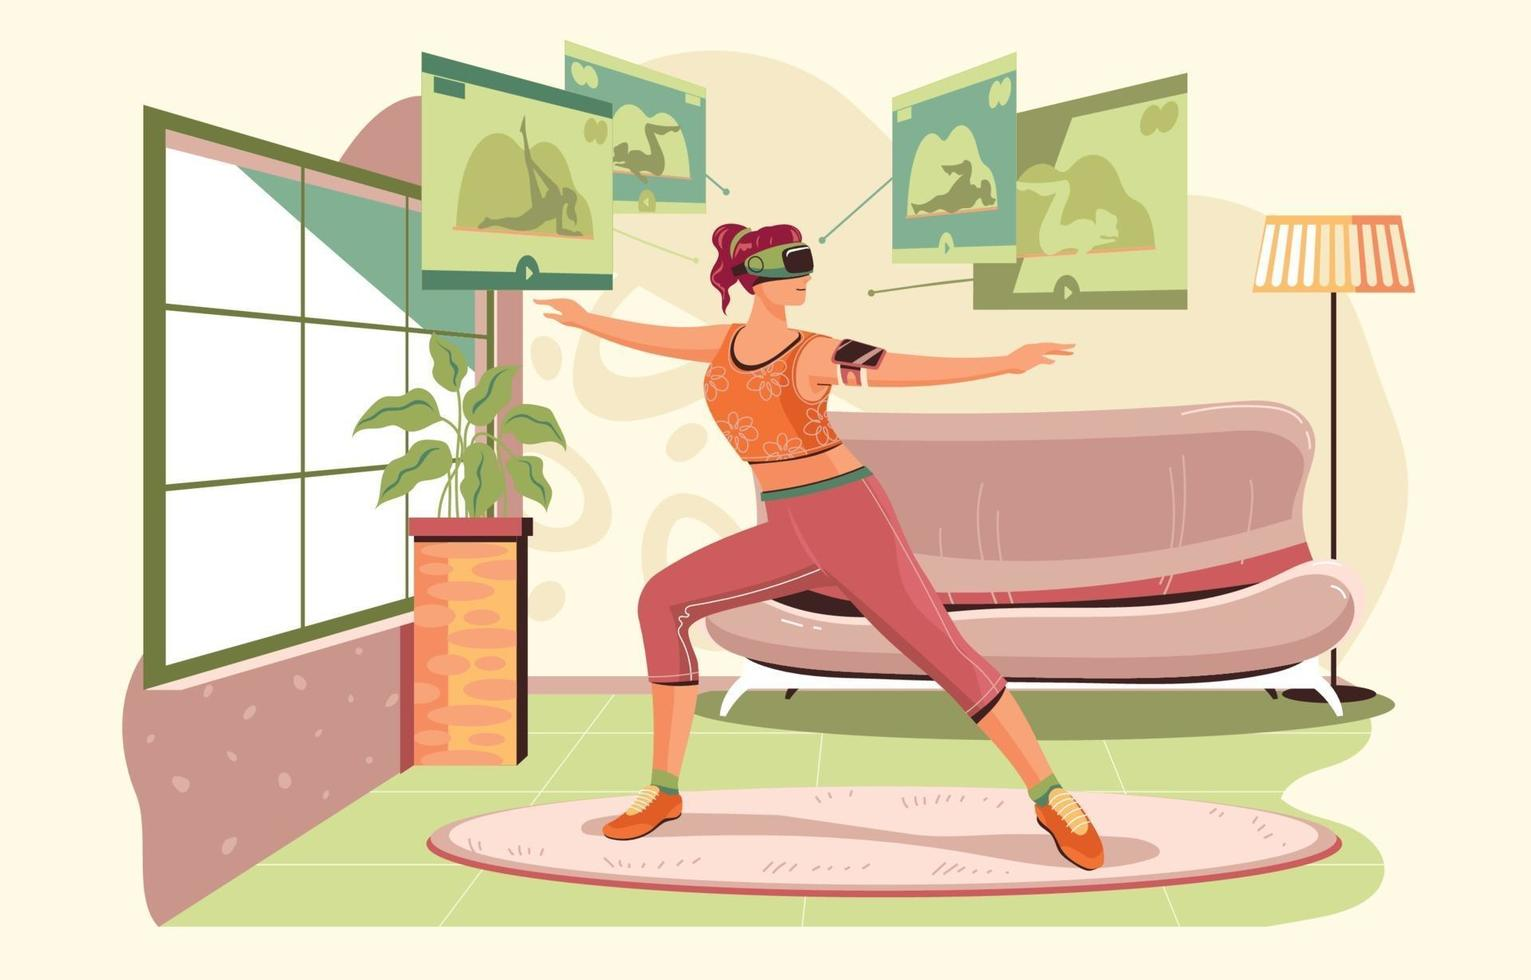 vr training thuis concept vector